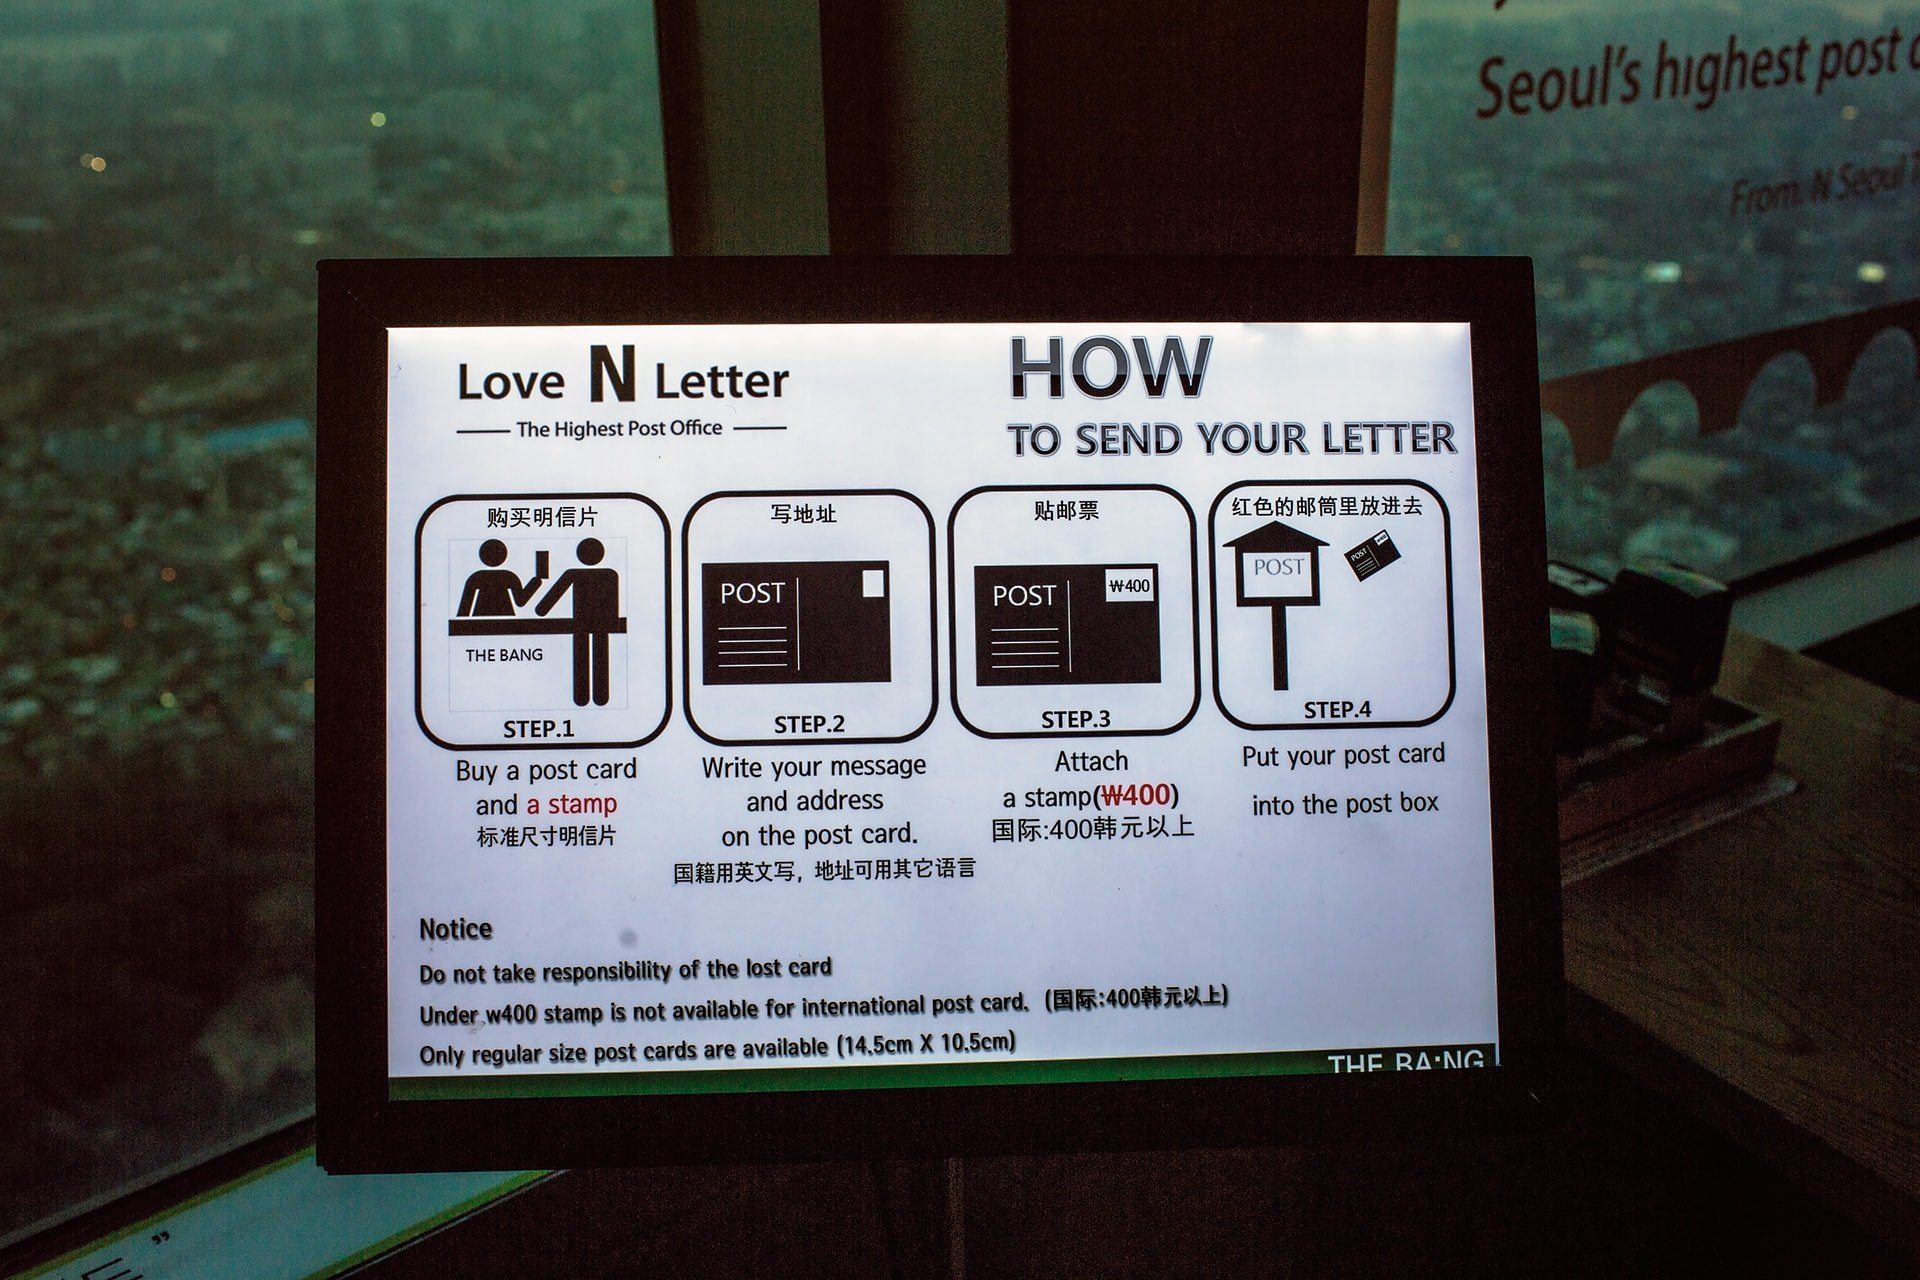 Instruction on How to send a love letter from N Seoul Tower in Seoul South Korea